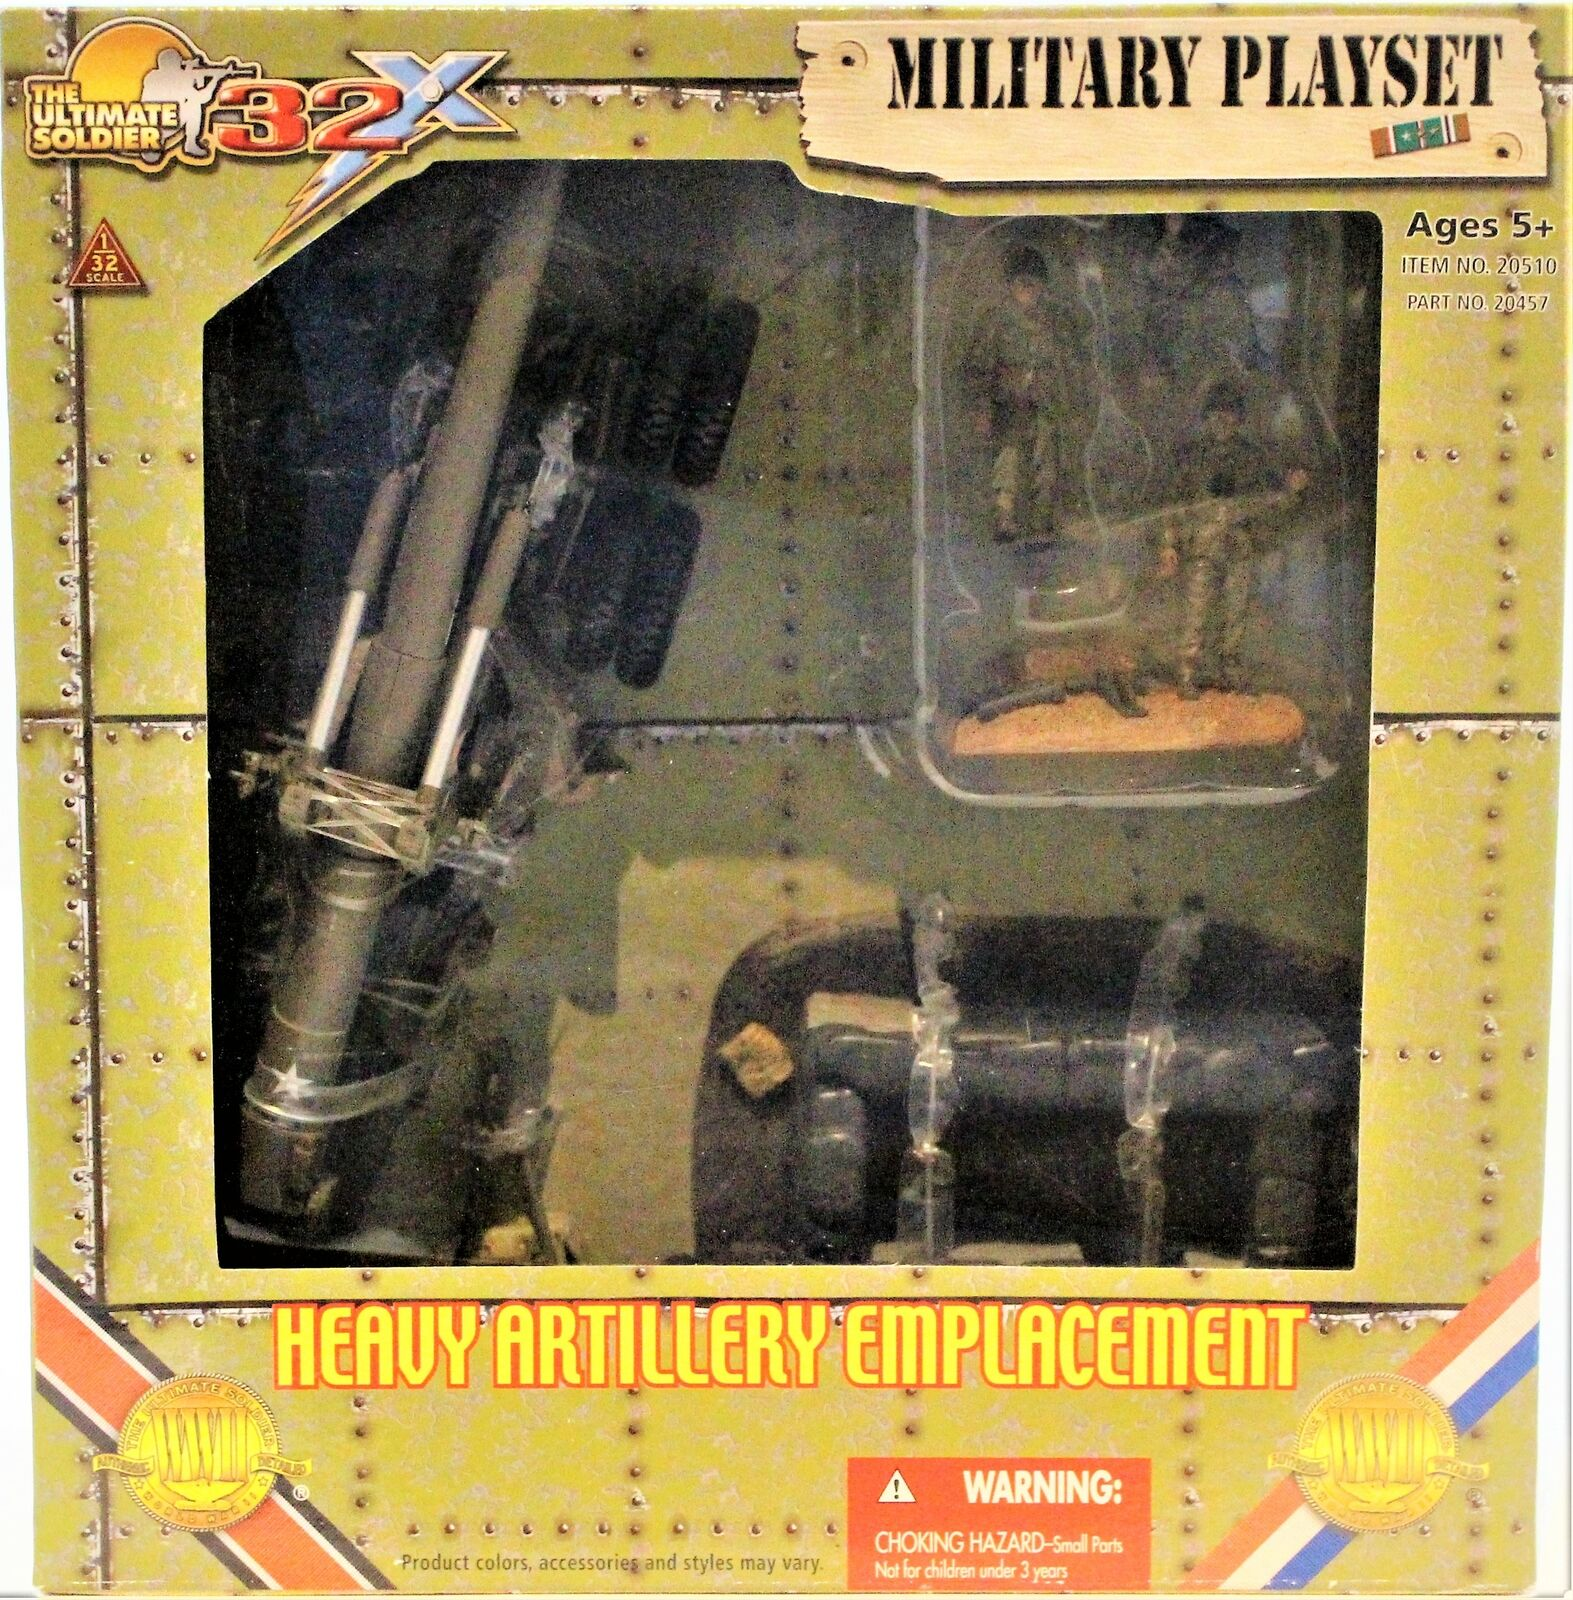 The Ultimate Soldier 1 32 Scale Heavy Artillery EmplaceSiet WWll 2007